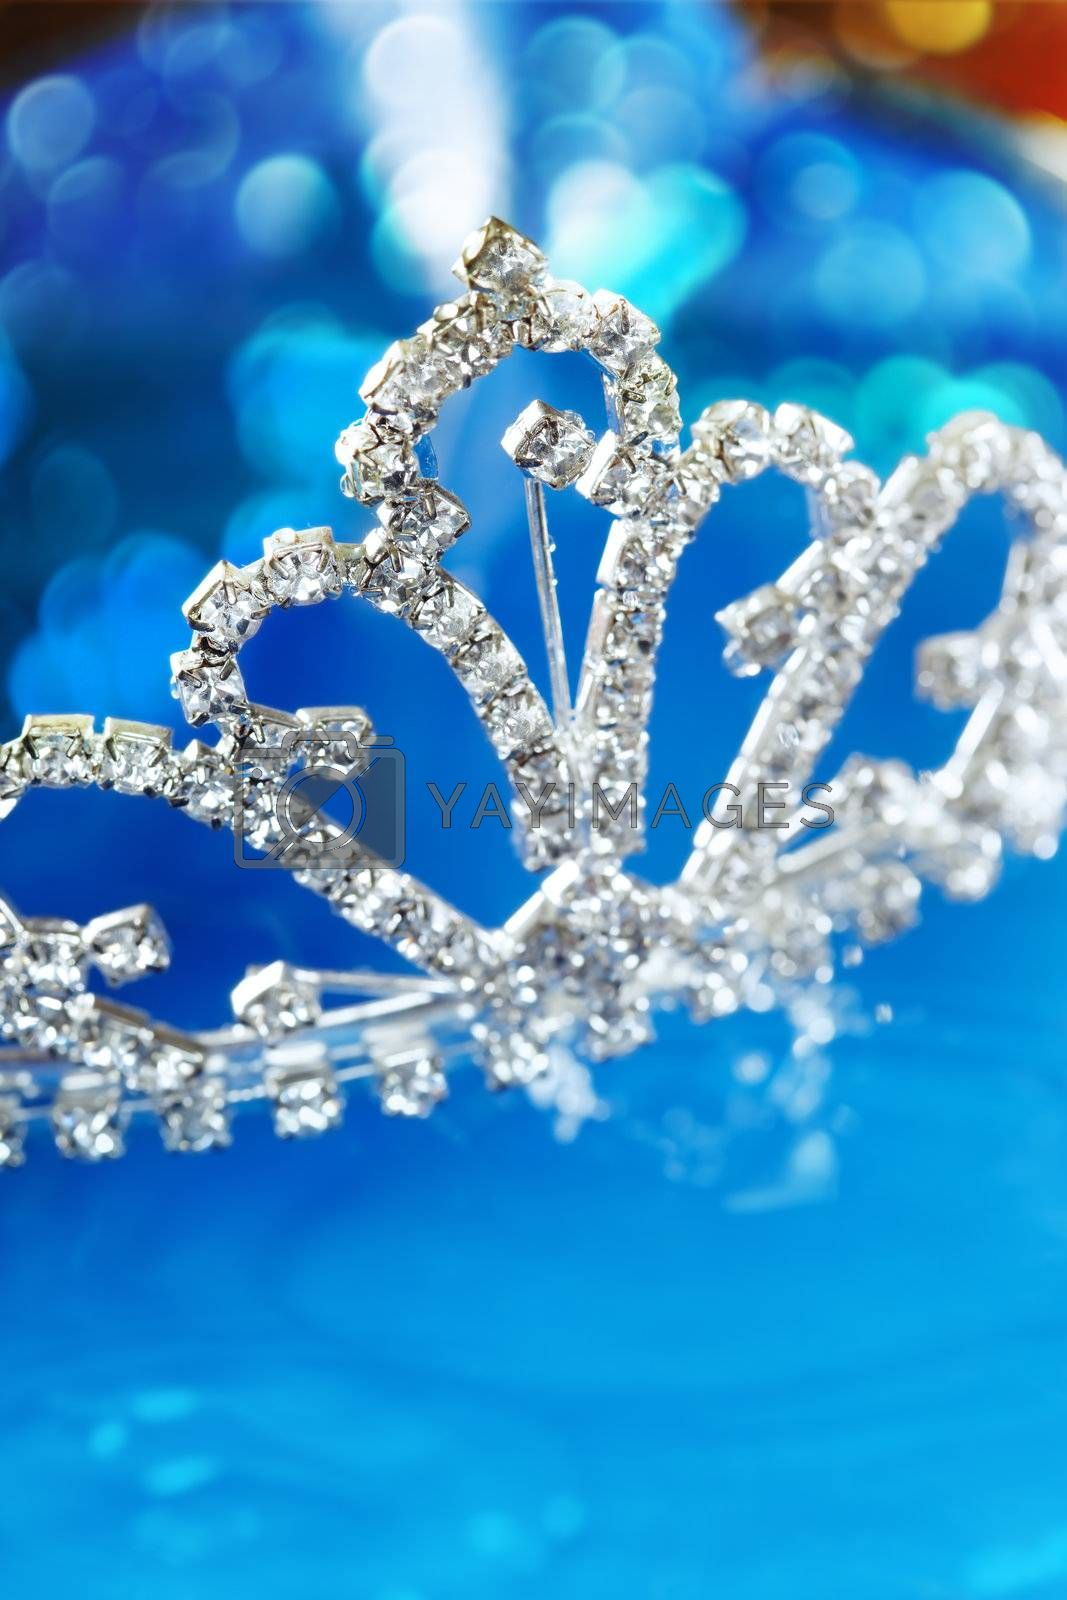 Close-up photo of the silver diadem with diamonds on a blue background with bokeh. Shallow depth of field added by macro lens for natural view